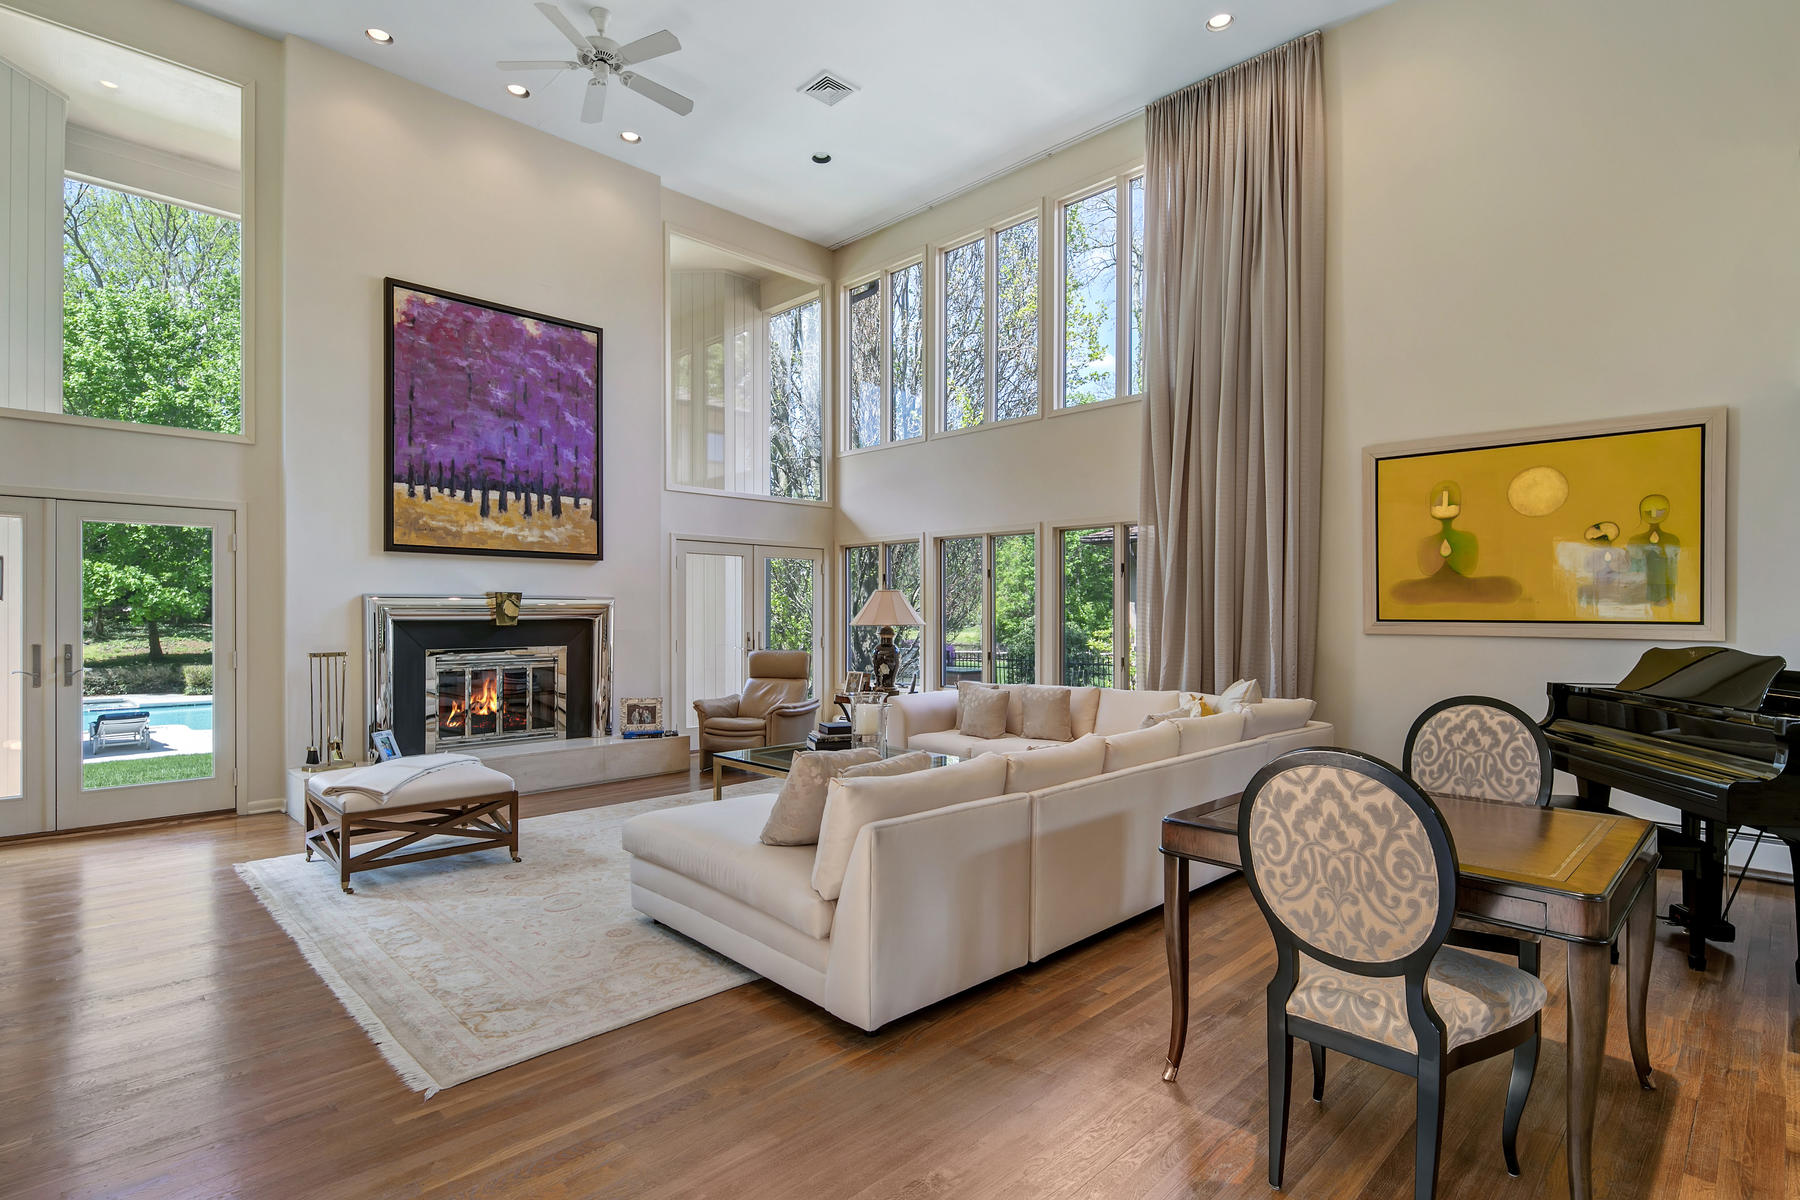 Single Family Home for Sale at Truly a Custom Home 4 Azalea Lane Rumson, New Jersey, 07760 United States